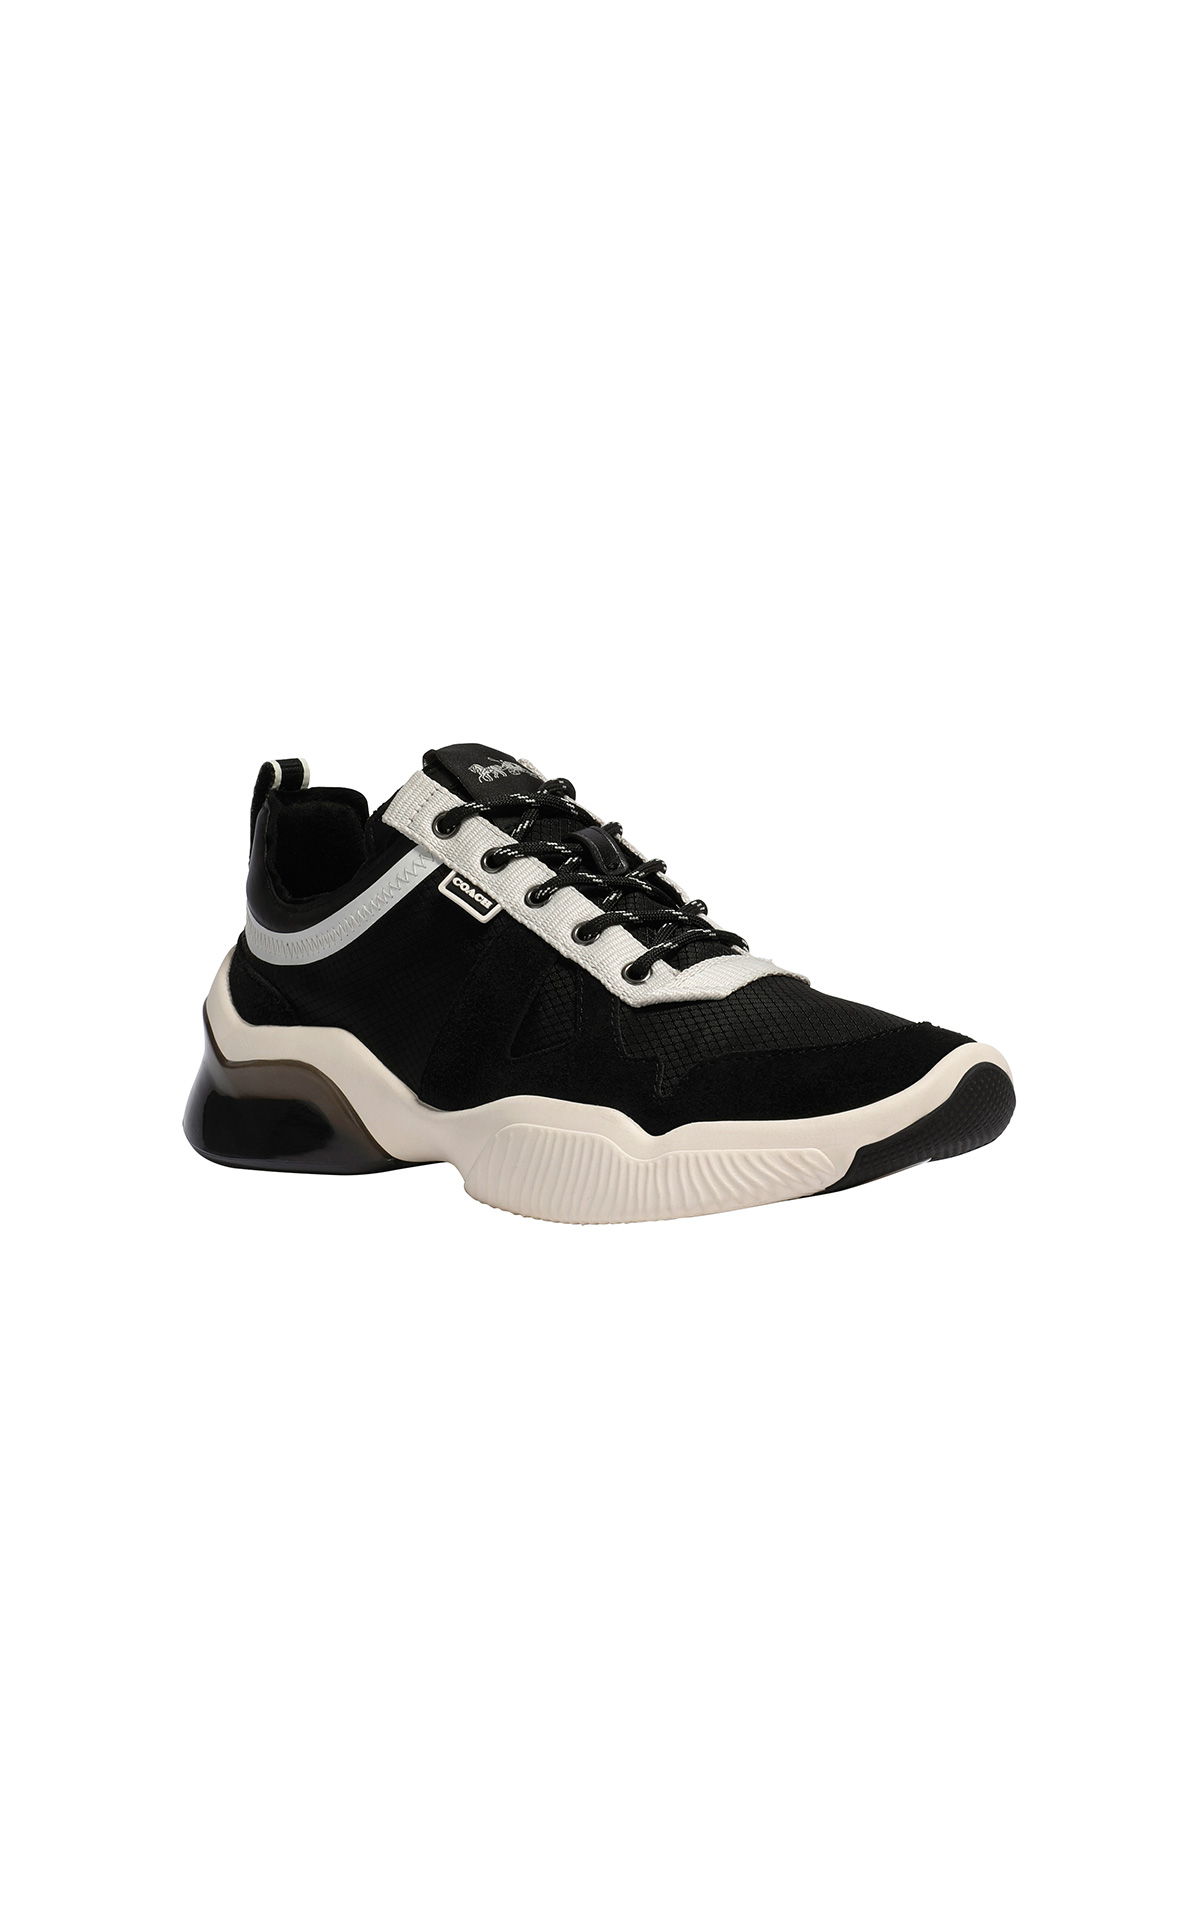 Coach Men's CitySole Runner at The Bicester Village Shopping Collection